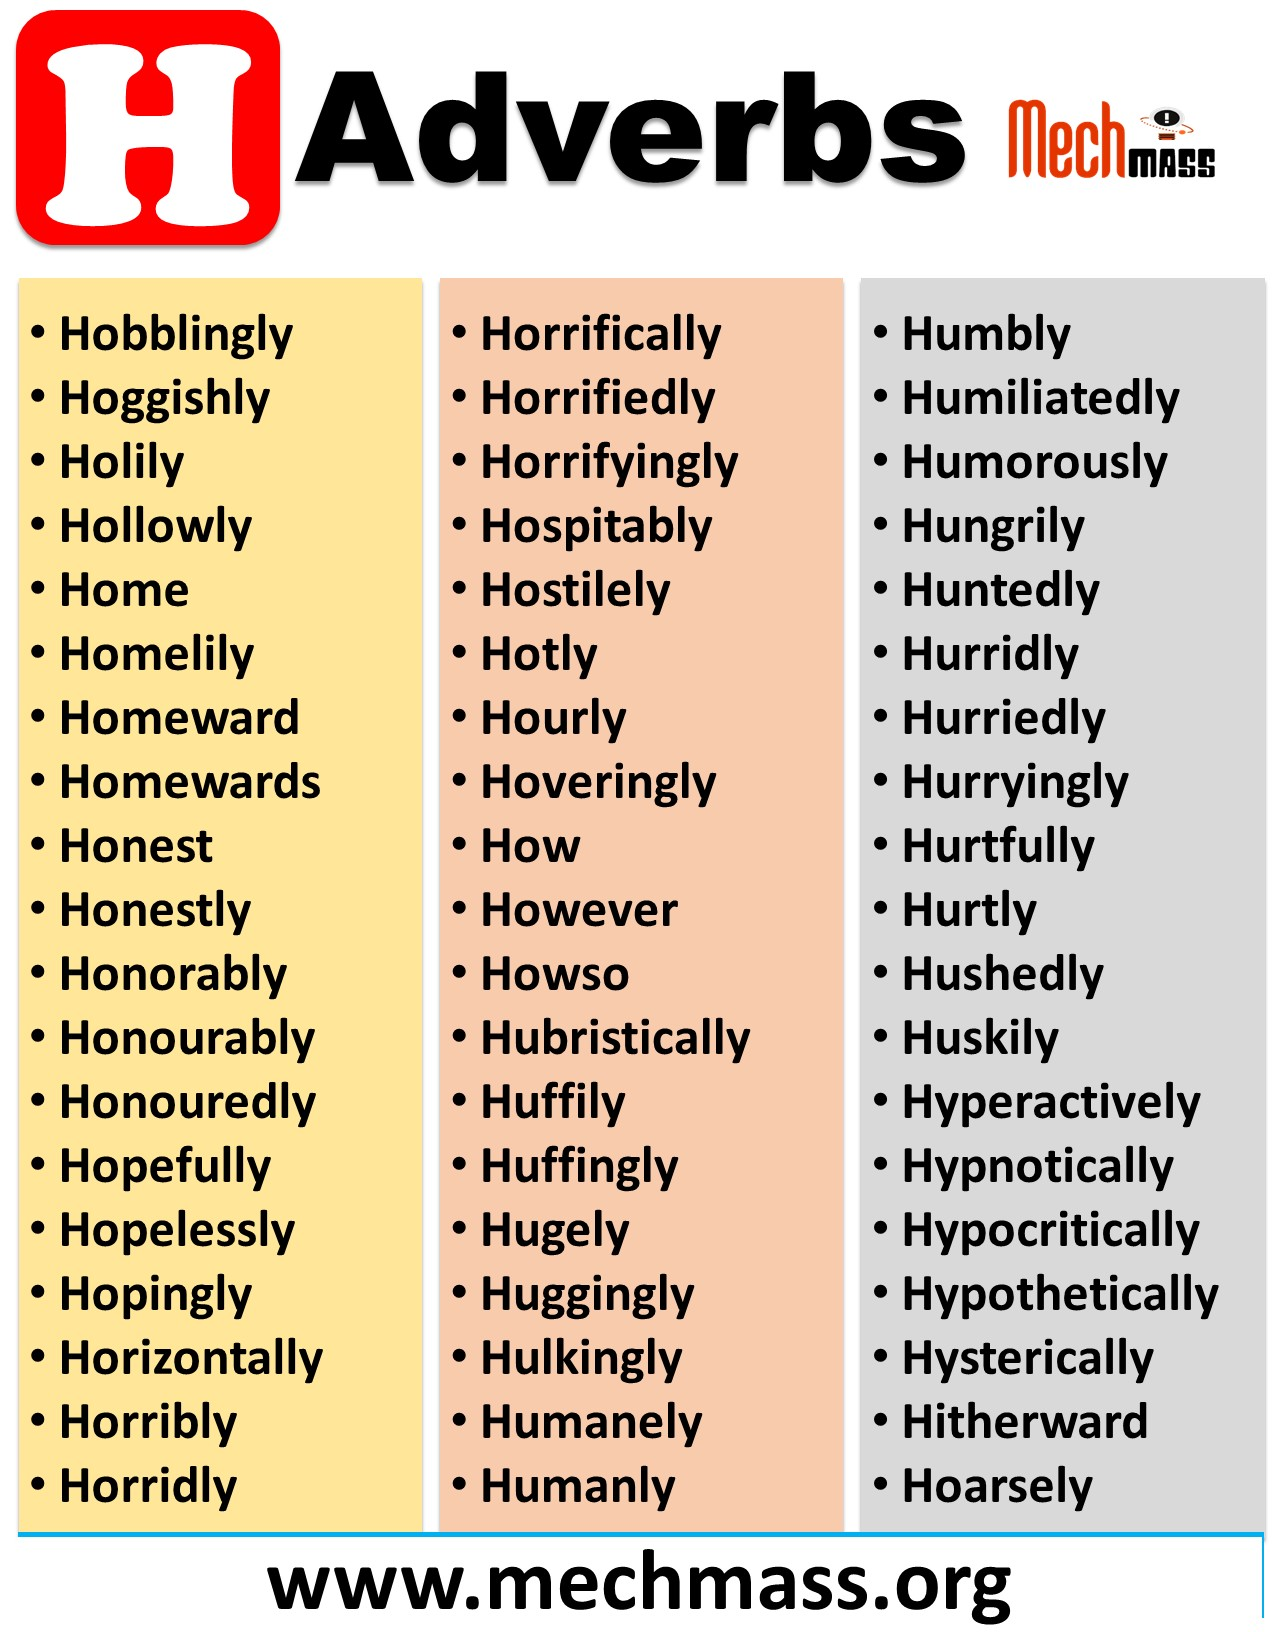 adverbs that start with letter h